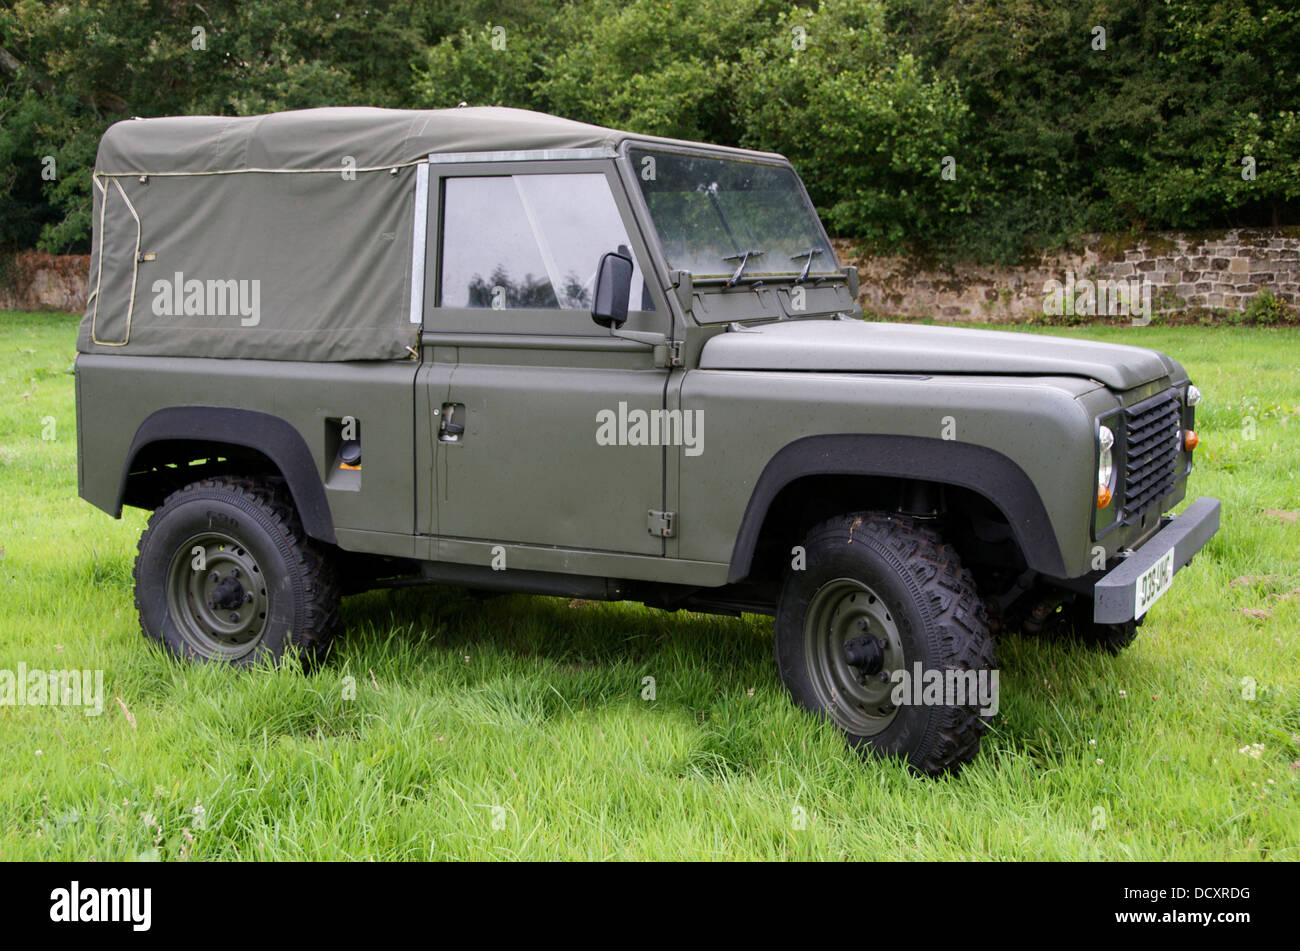 sale for landrover vermont tatc ltd vintage used rover banner defenders next land dorset previous